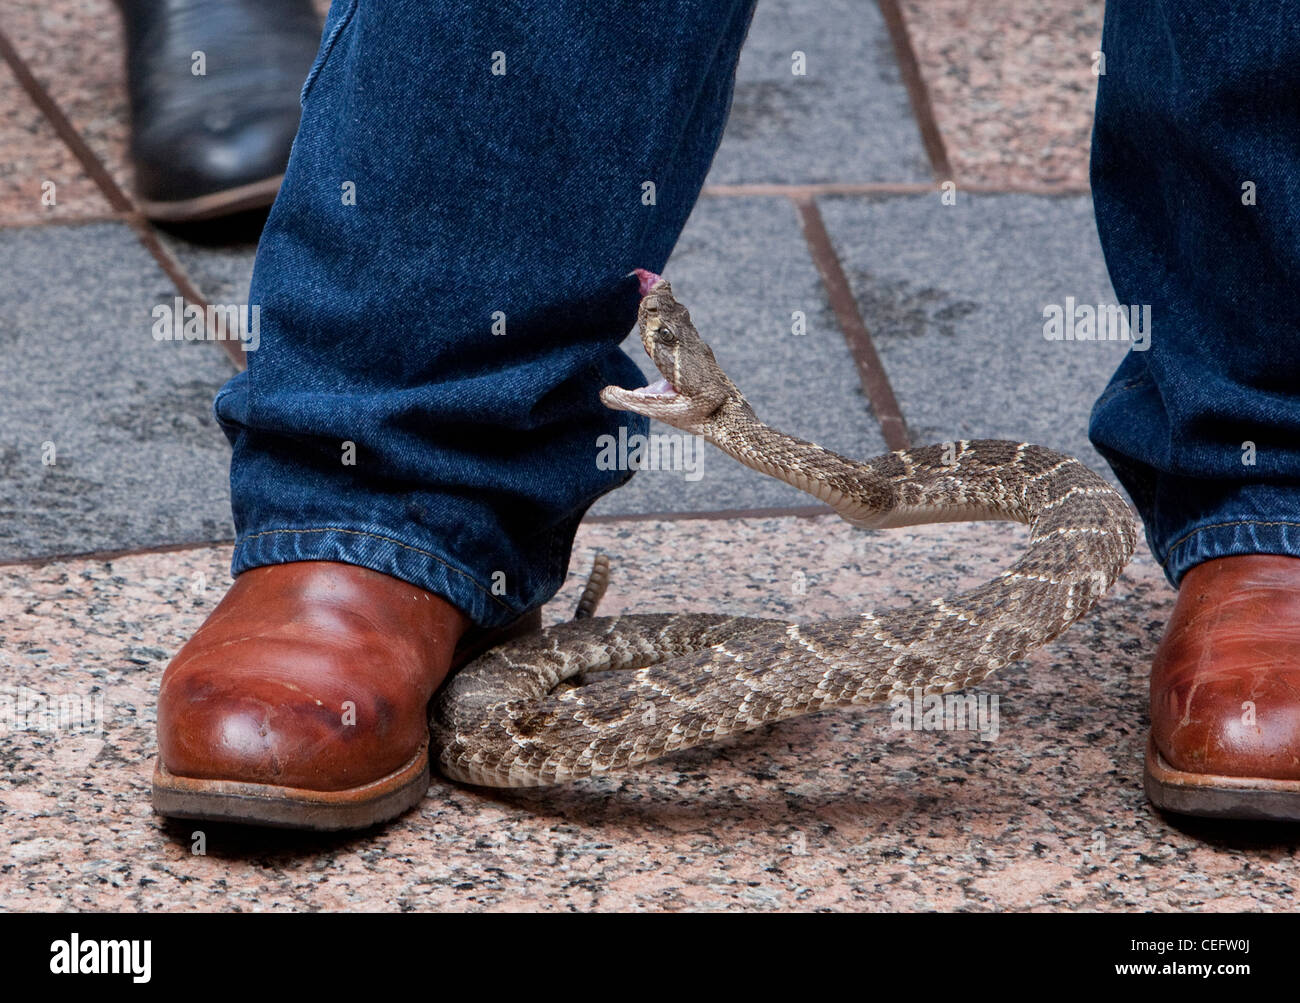 rattlesnake bites it's handler, Riley Sawyers during a visit to the Texas State Capitol promoting the  Rattlesnake - Stock Image